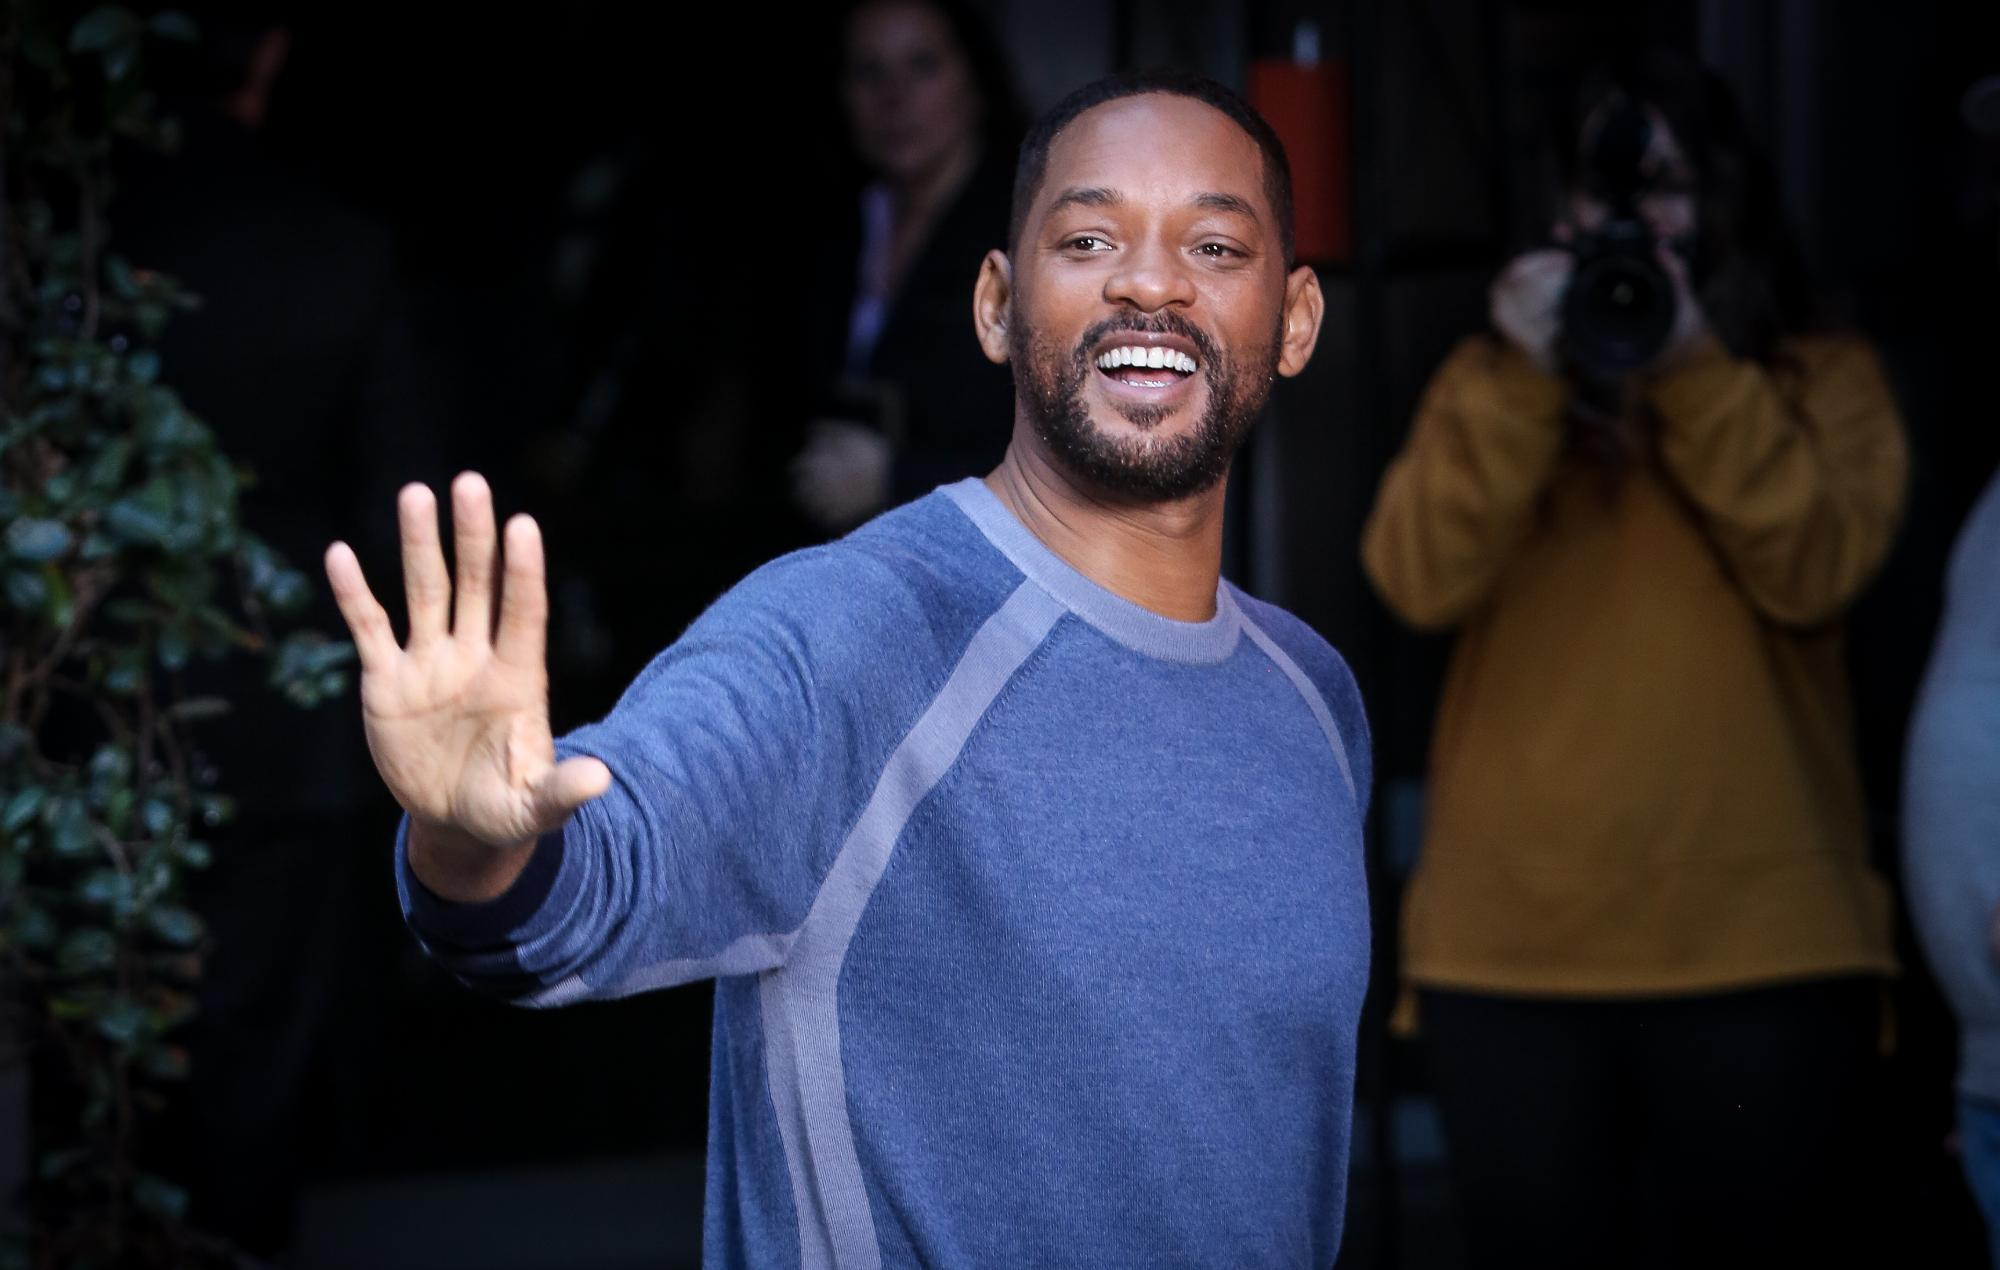 Will Smith's new film will no longer film in Georgia due to voting laws